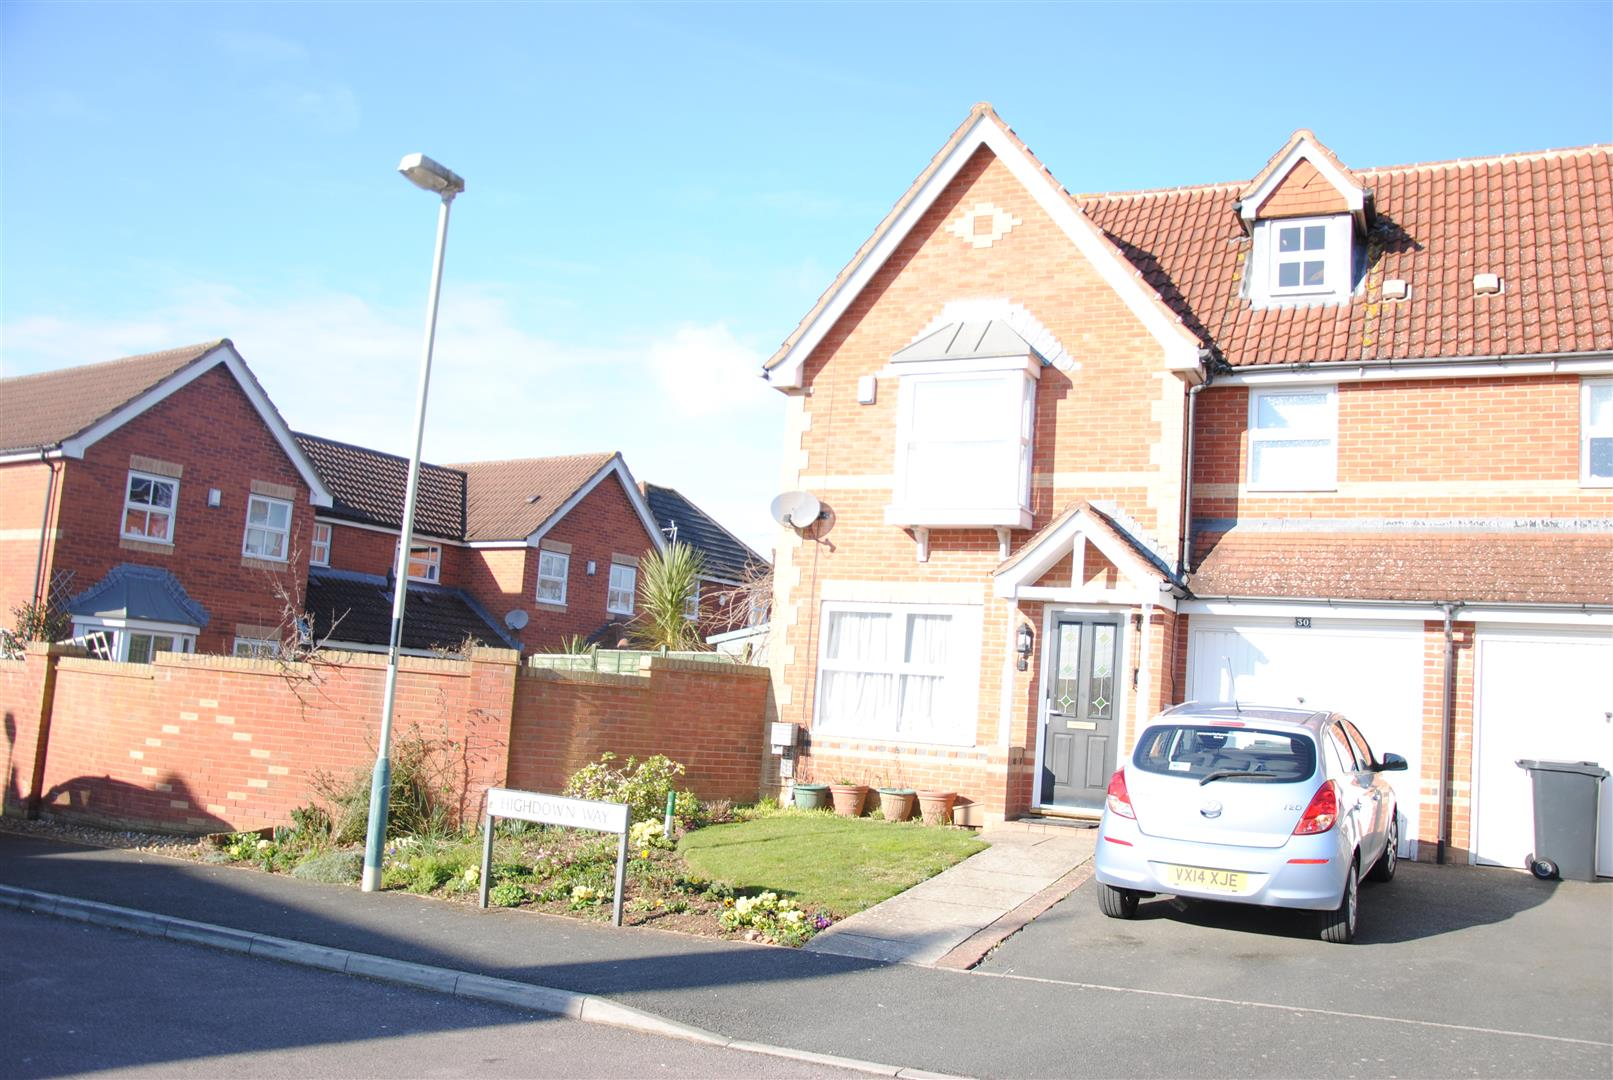 3 Bedrooms End Of Terrace House for sale in Highdown Way, St Andrews Ridge, Swindon